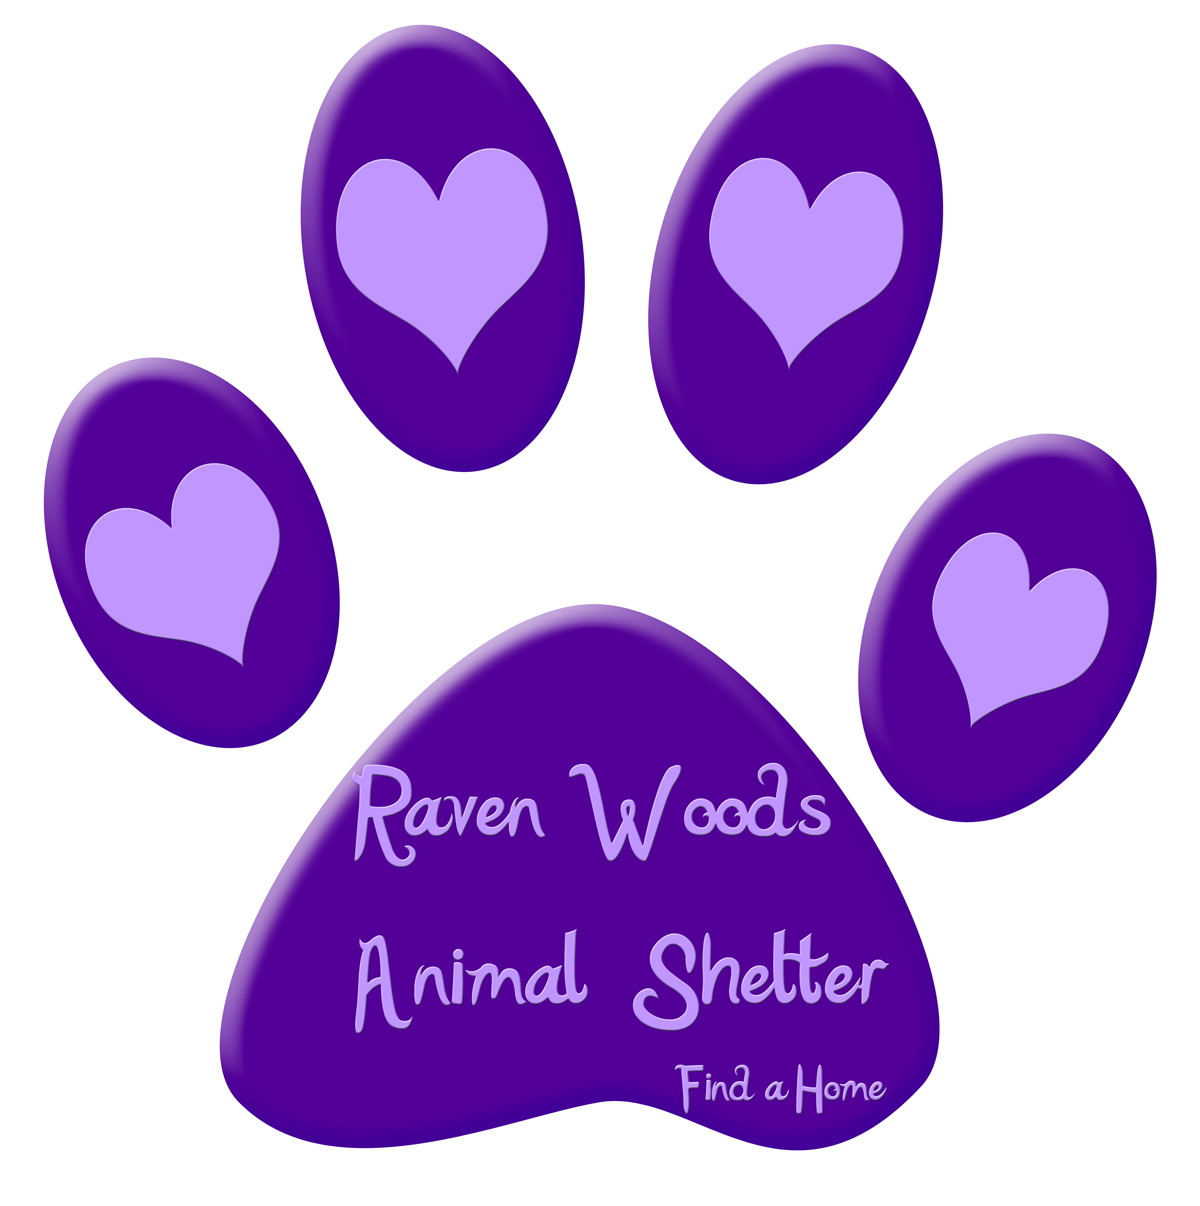 Raven Woods Animal Sanctuary